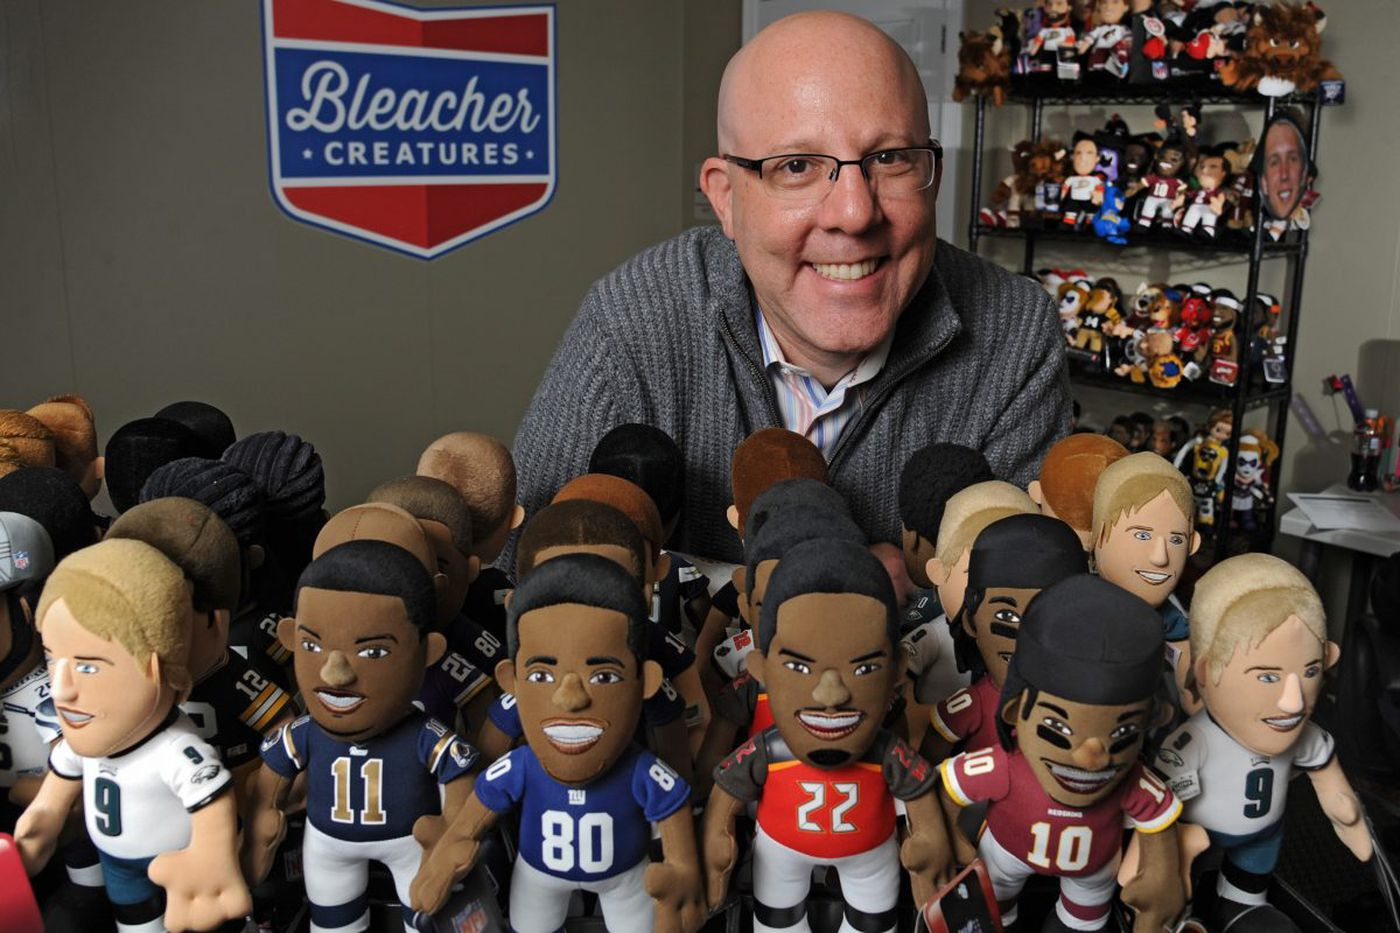 Plush sports-doll maker Bleacher Creatures files for bankruptcy